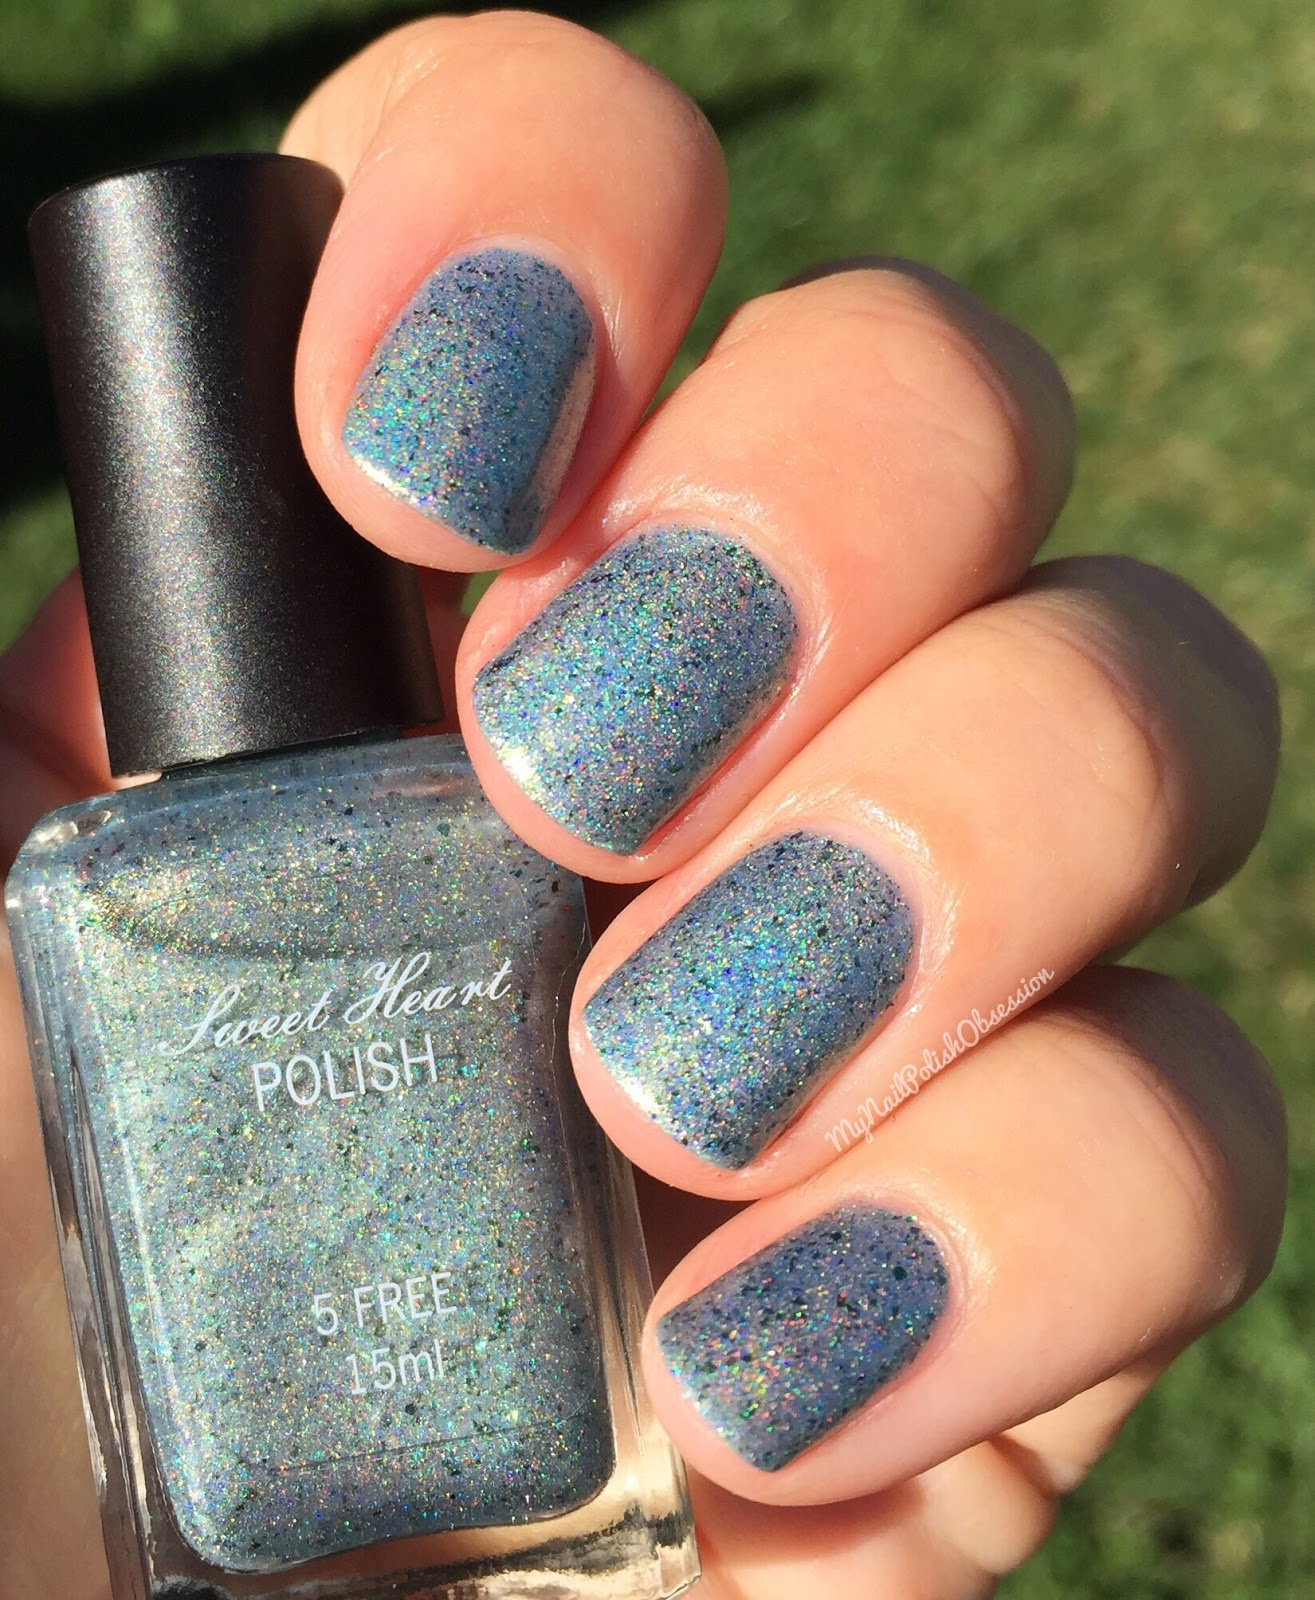 January Nail Colors: My Nail Polish Obsession: Sweet Heart Polish LE Monthlies